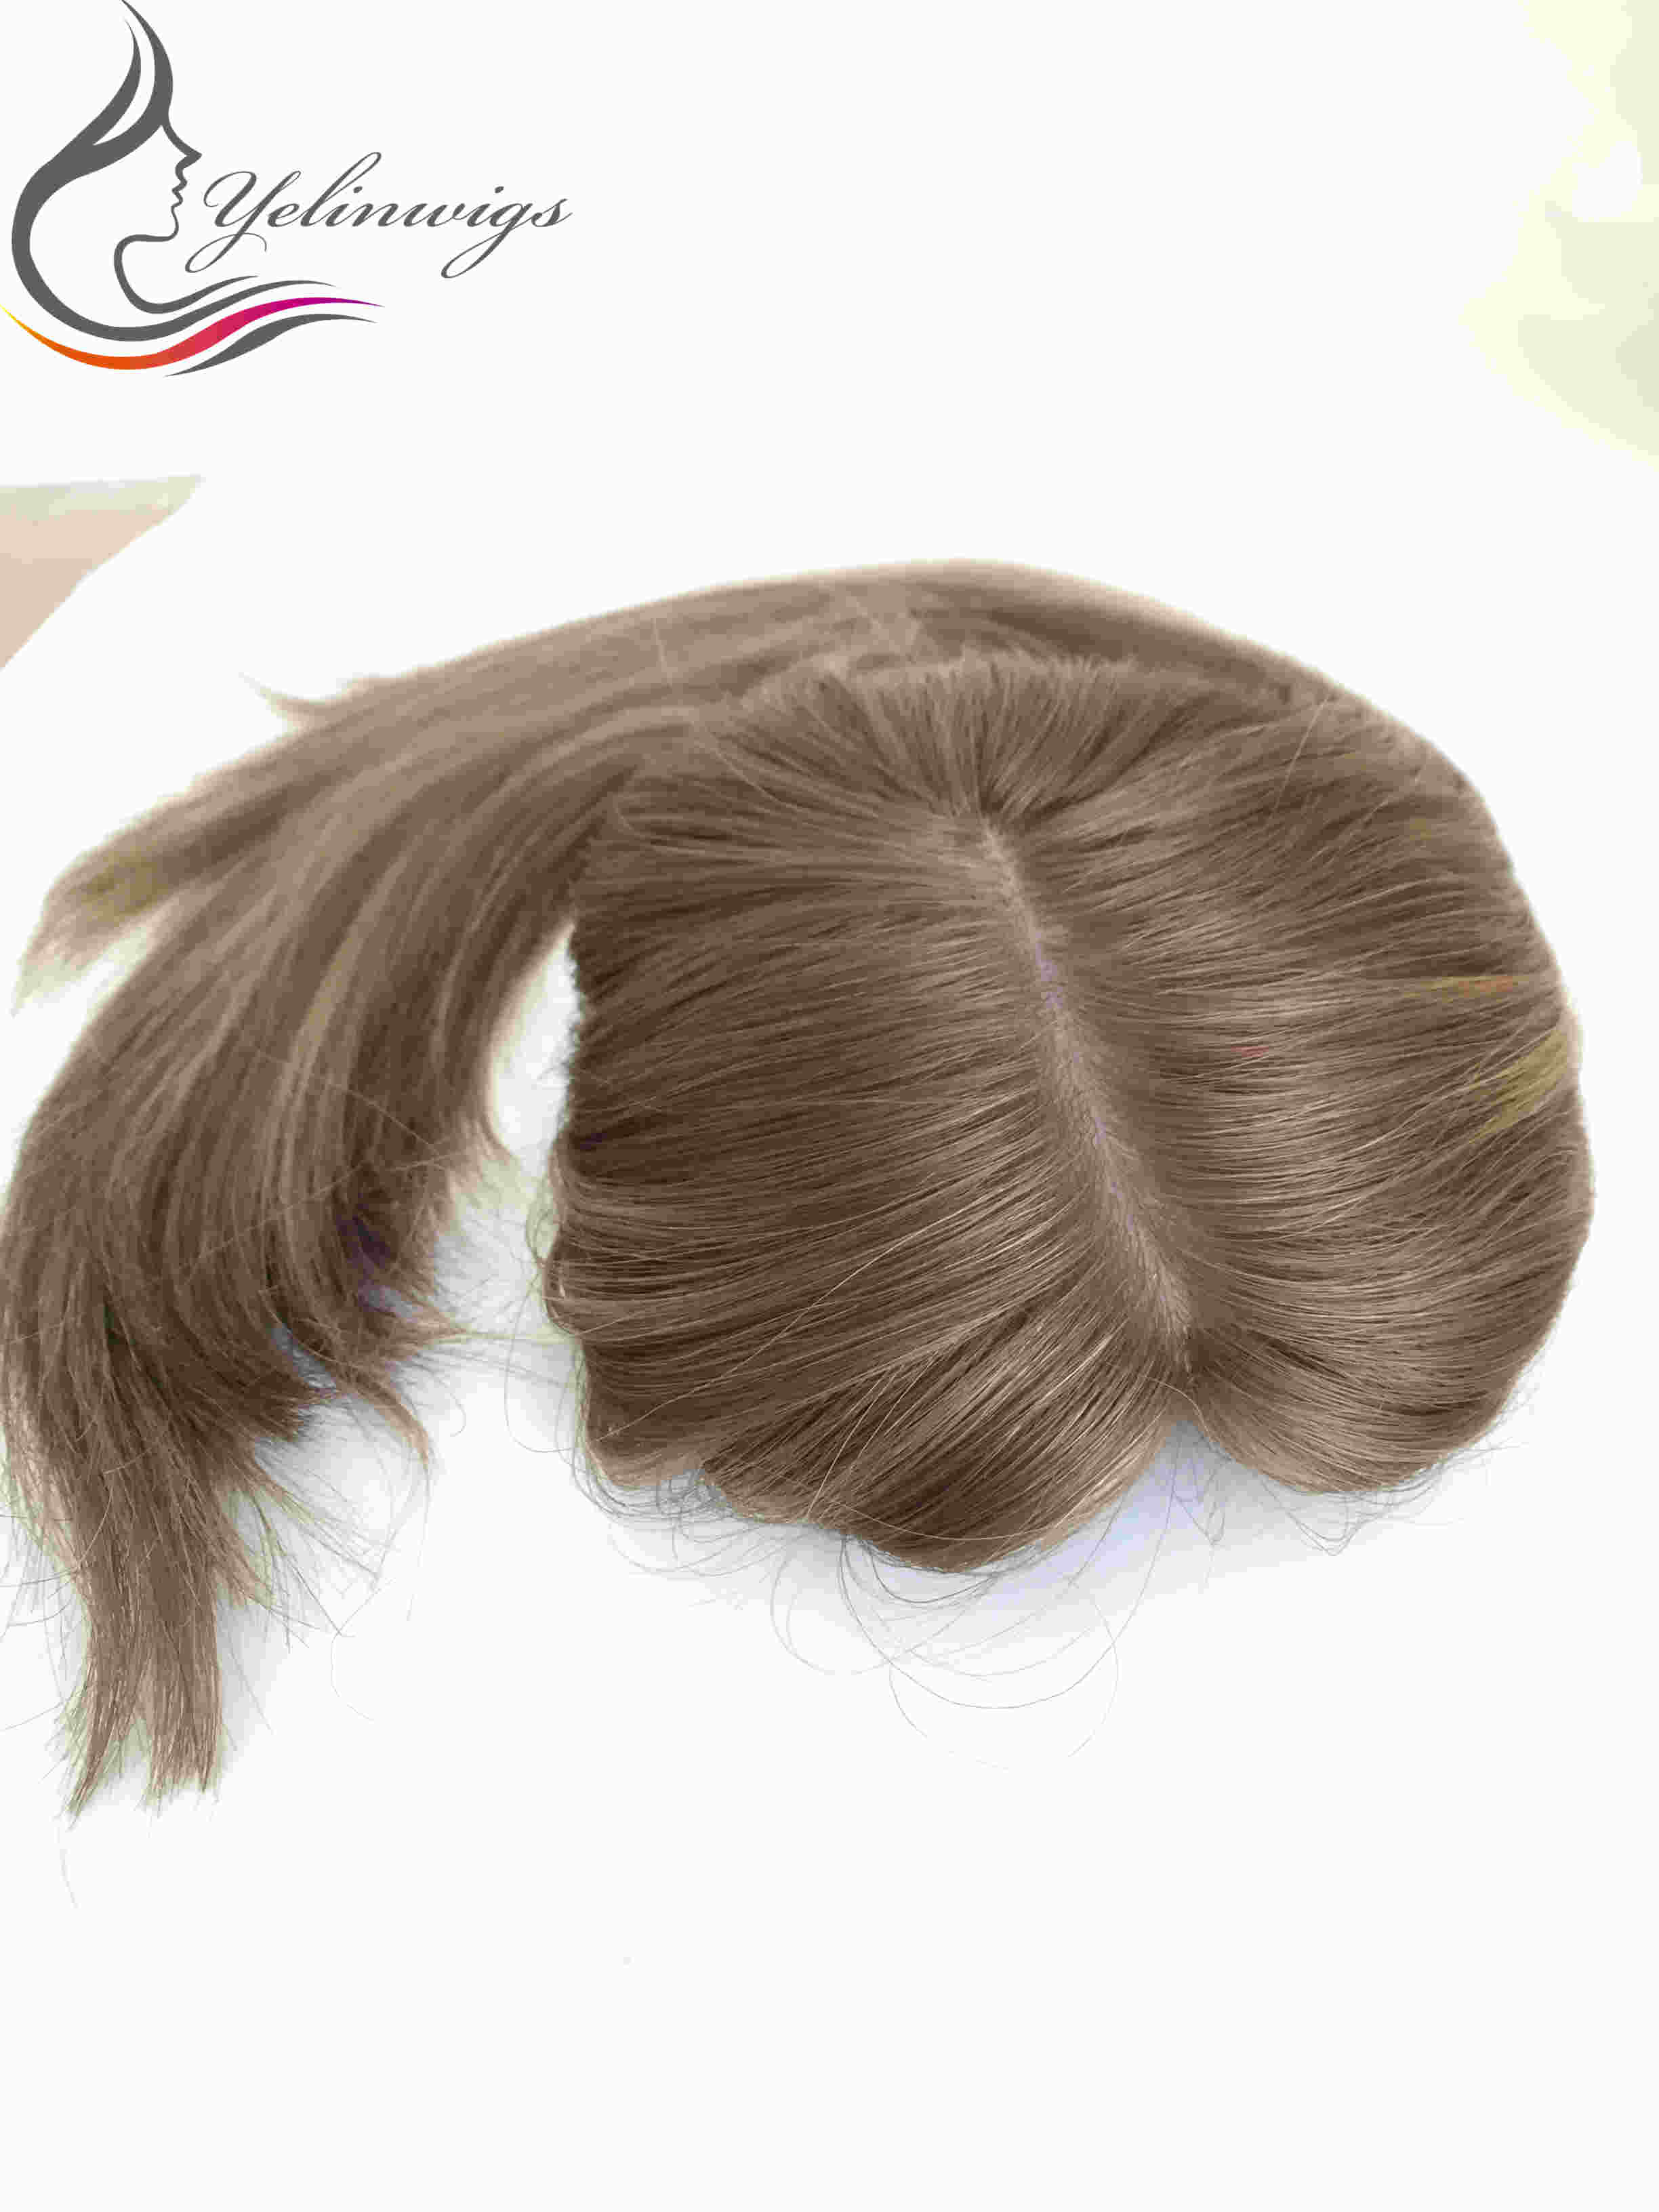 Hot Sale Highlight Blonde Color Jewish Topper Hair Pieces High Quality European Hair Kippah Fall Hair Pieces